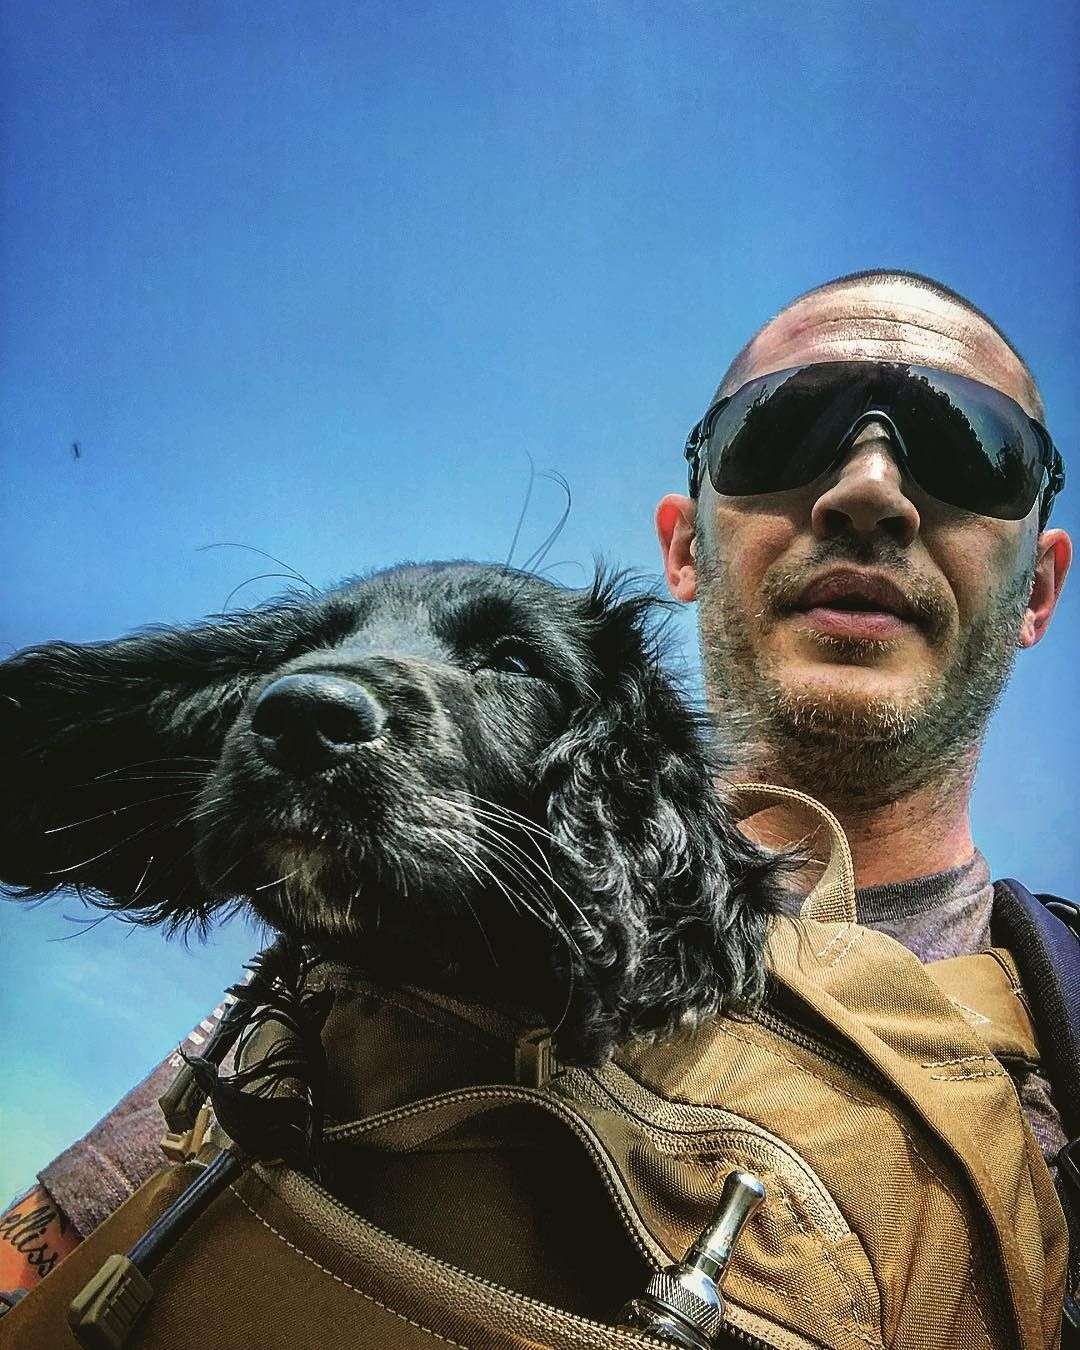 e5f4f3c61 Pin by Natasha W on 2018 | Tom hardy variations, Tom hardy dog, Tom ...